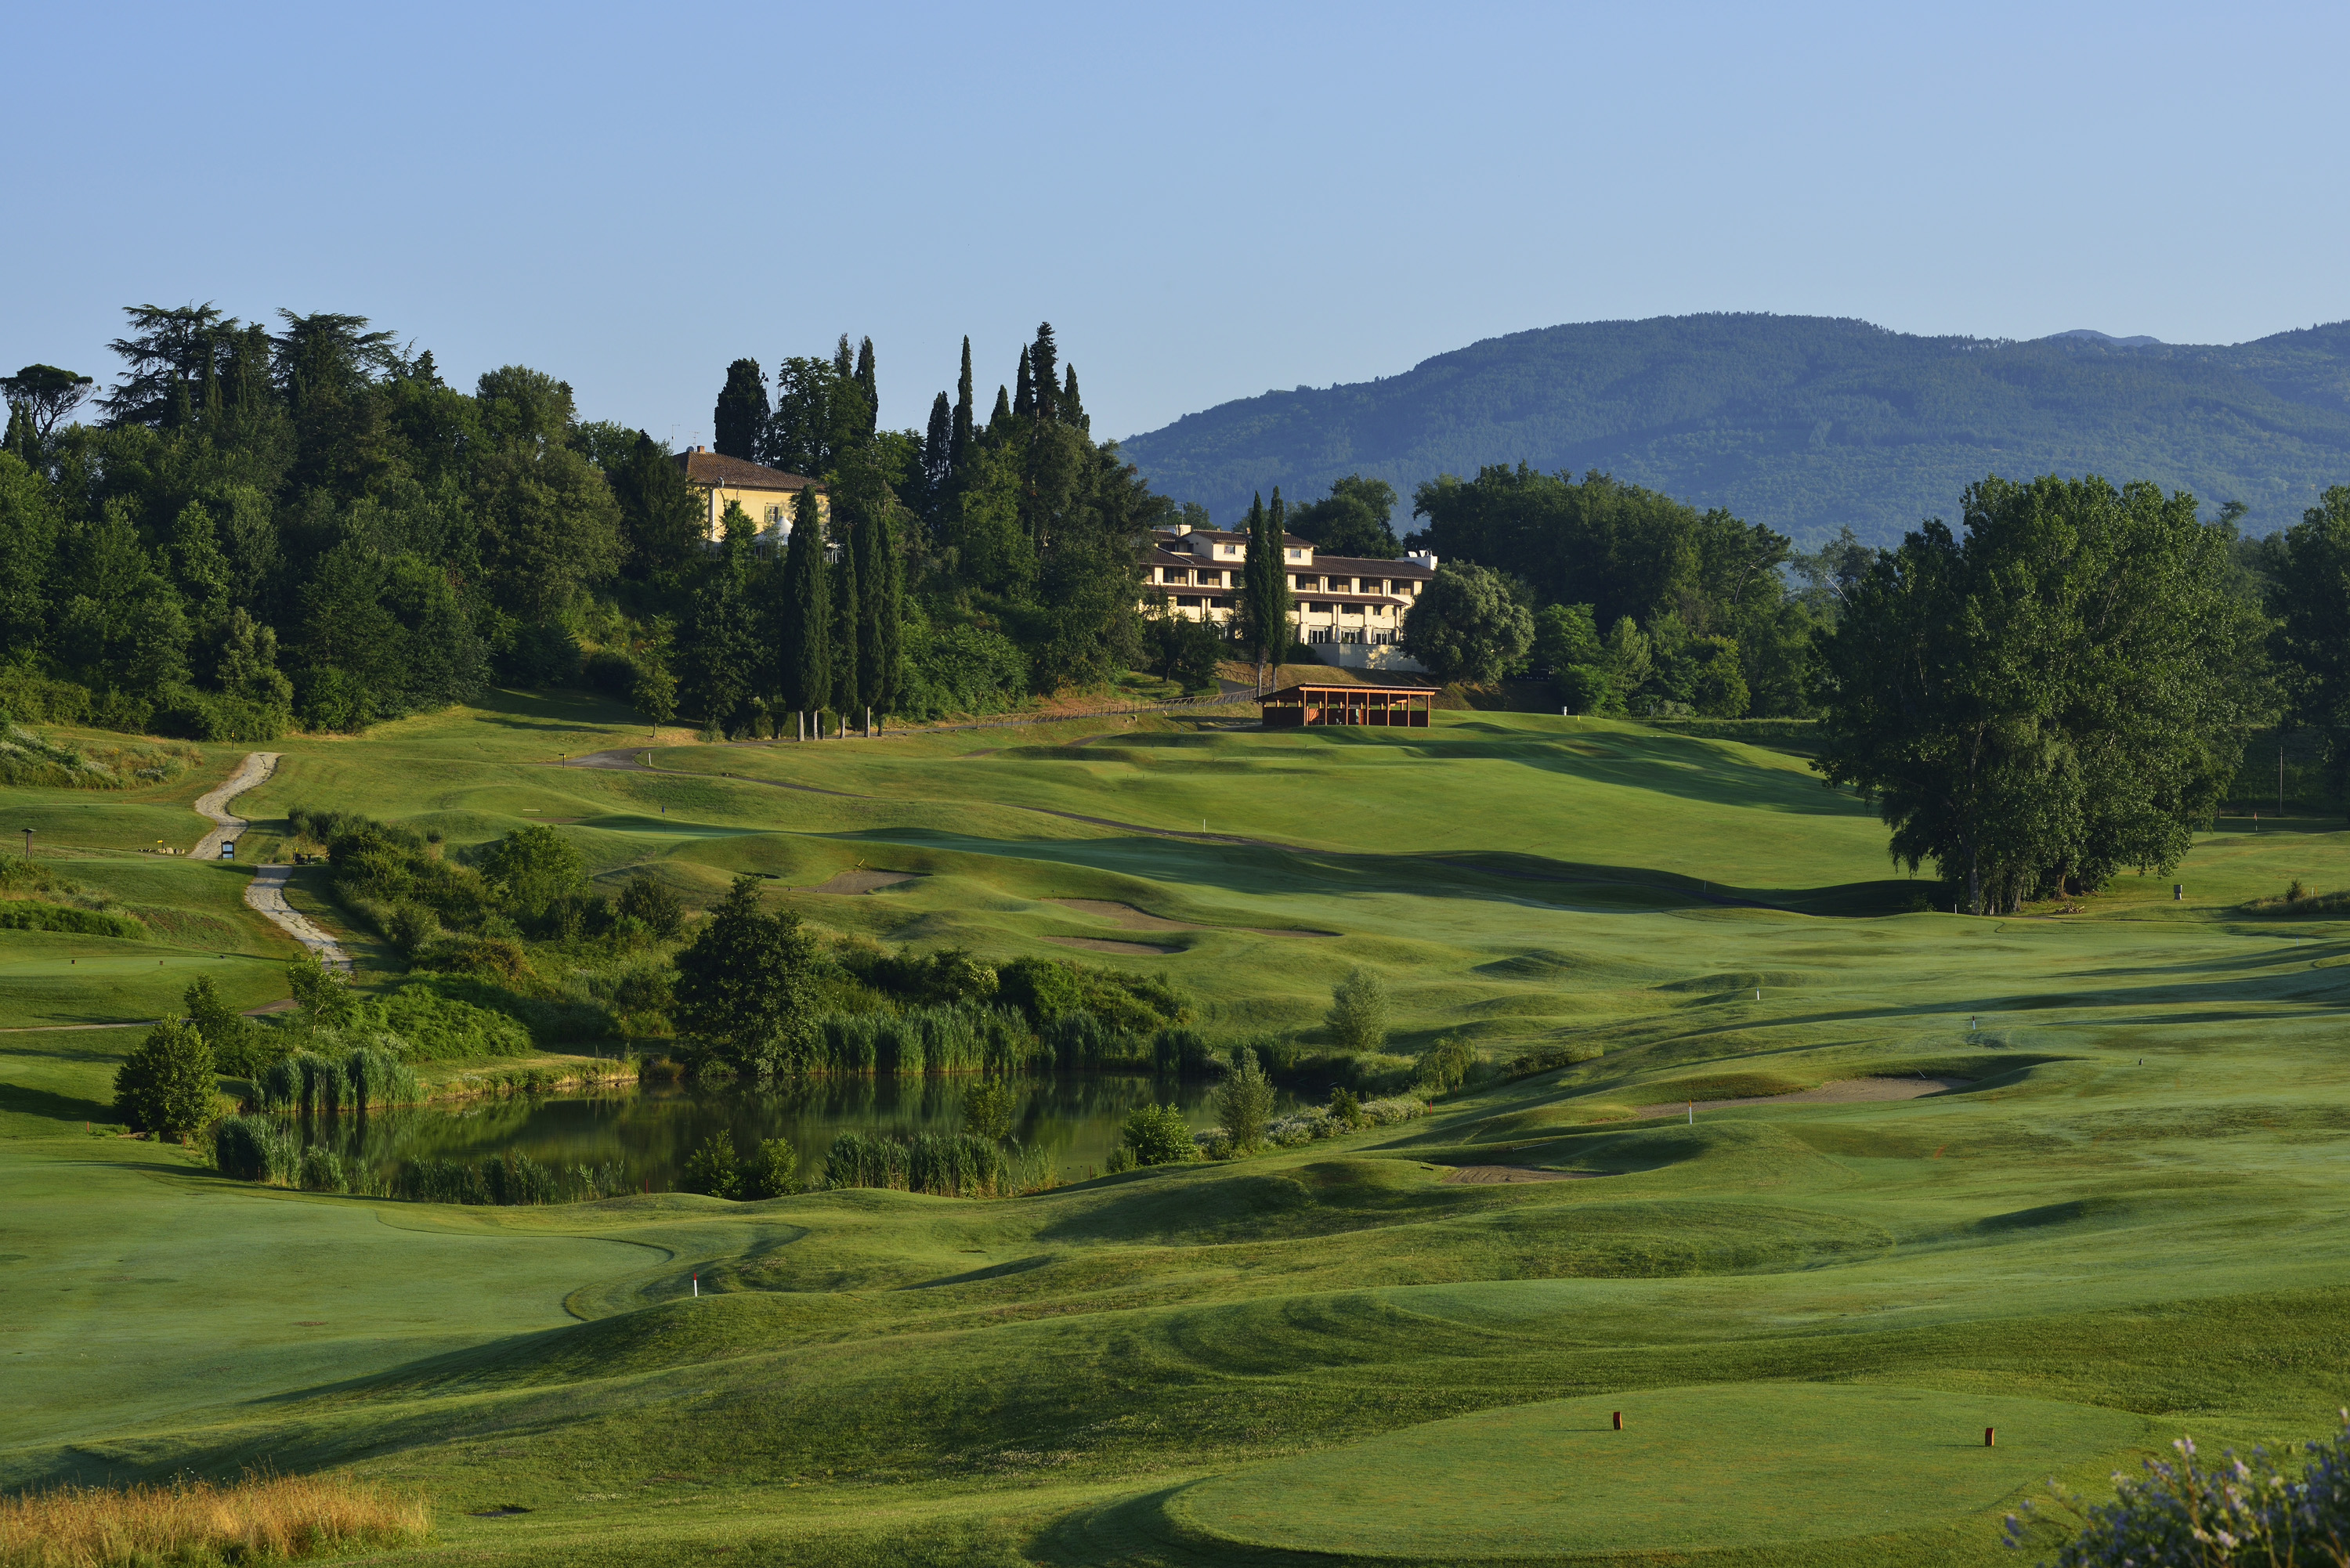 Poggio-Medici-Toscana-Firenze-Resort-Experiences-Italy4golf